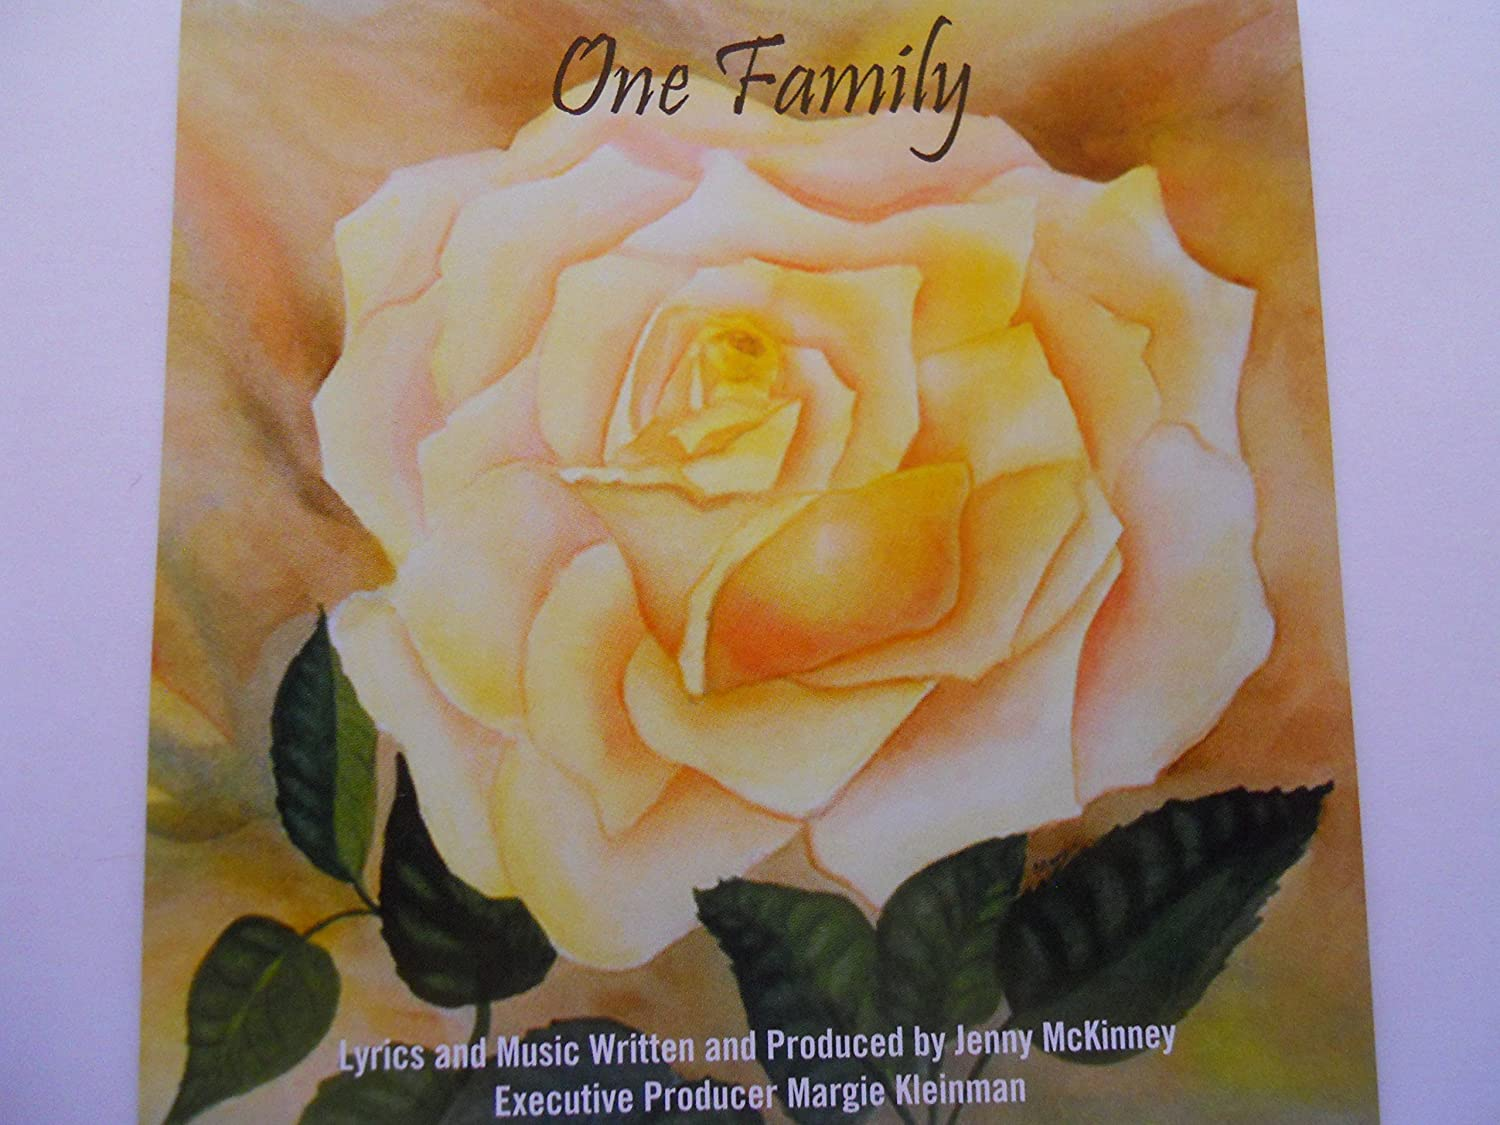 Jenny McKinney - One Family - Amazon.com Music